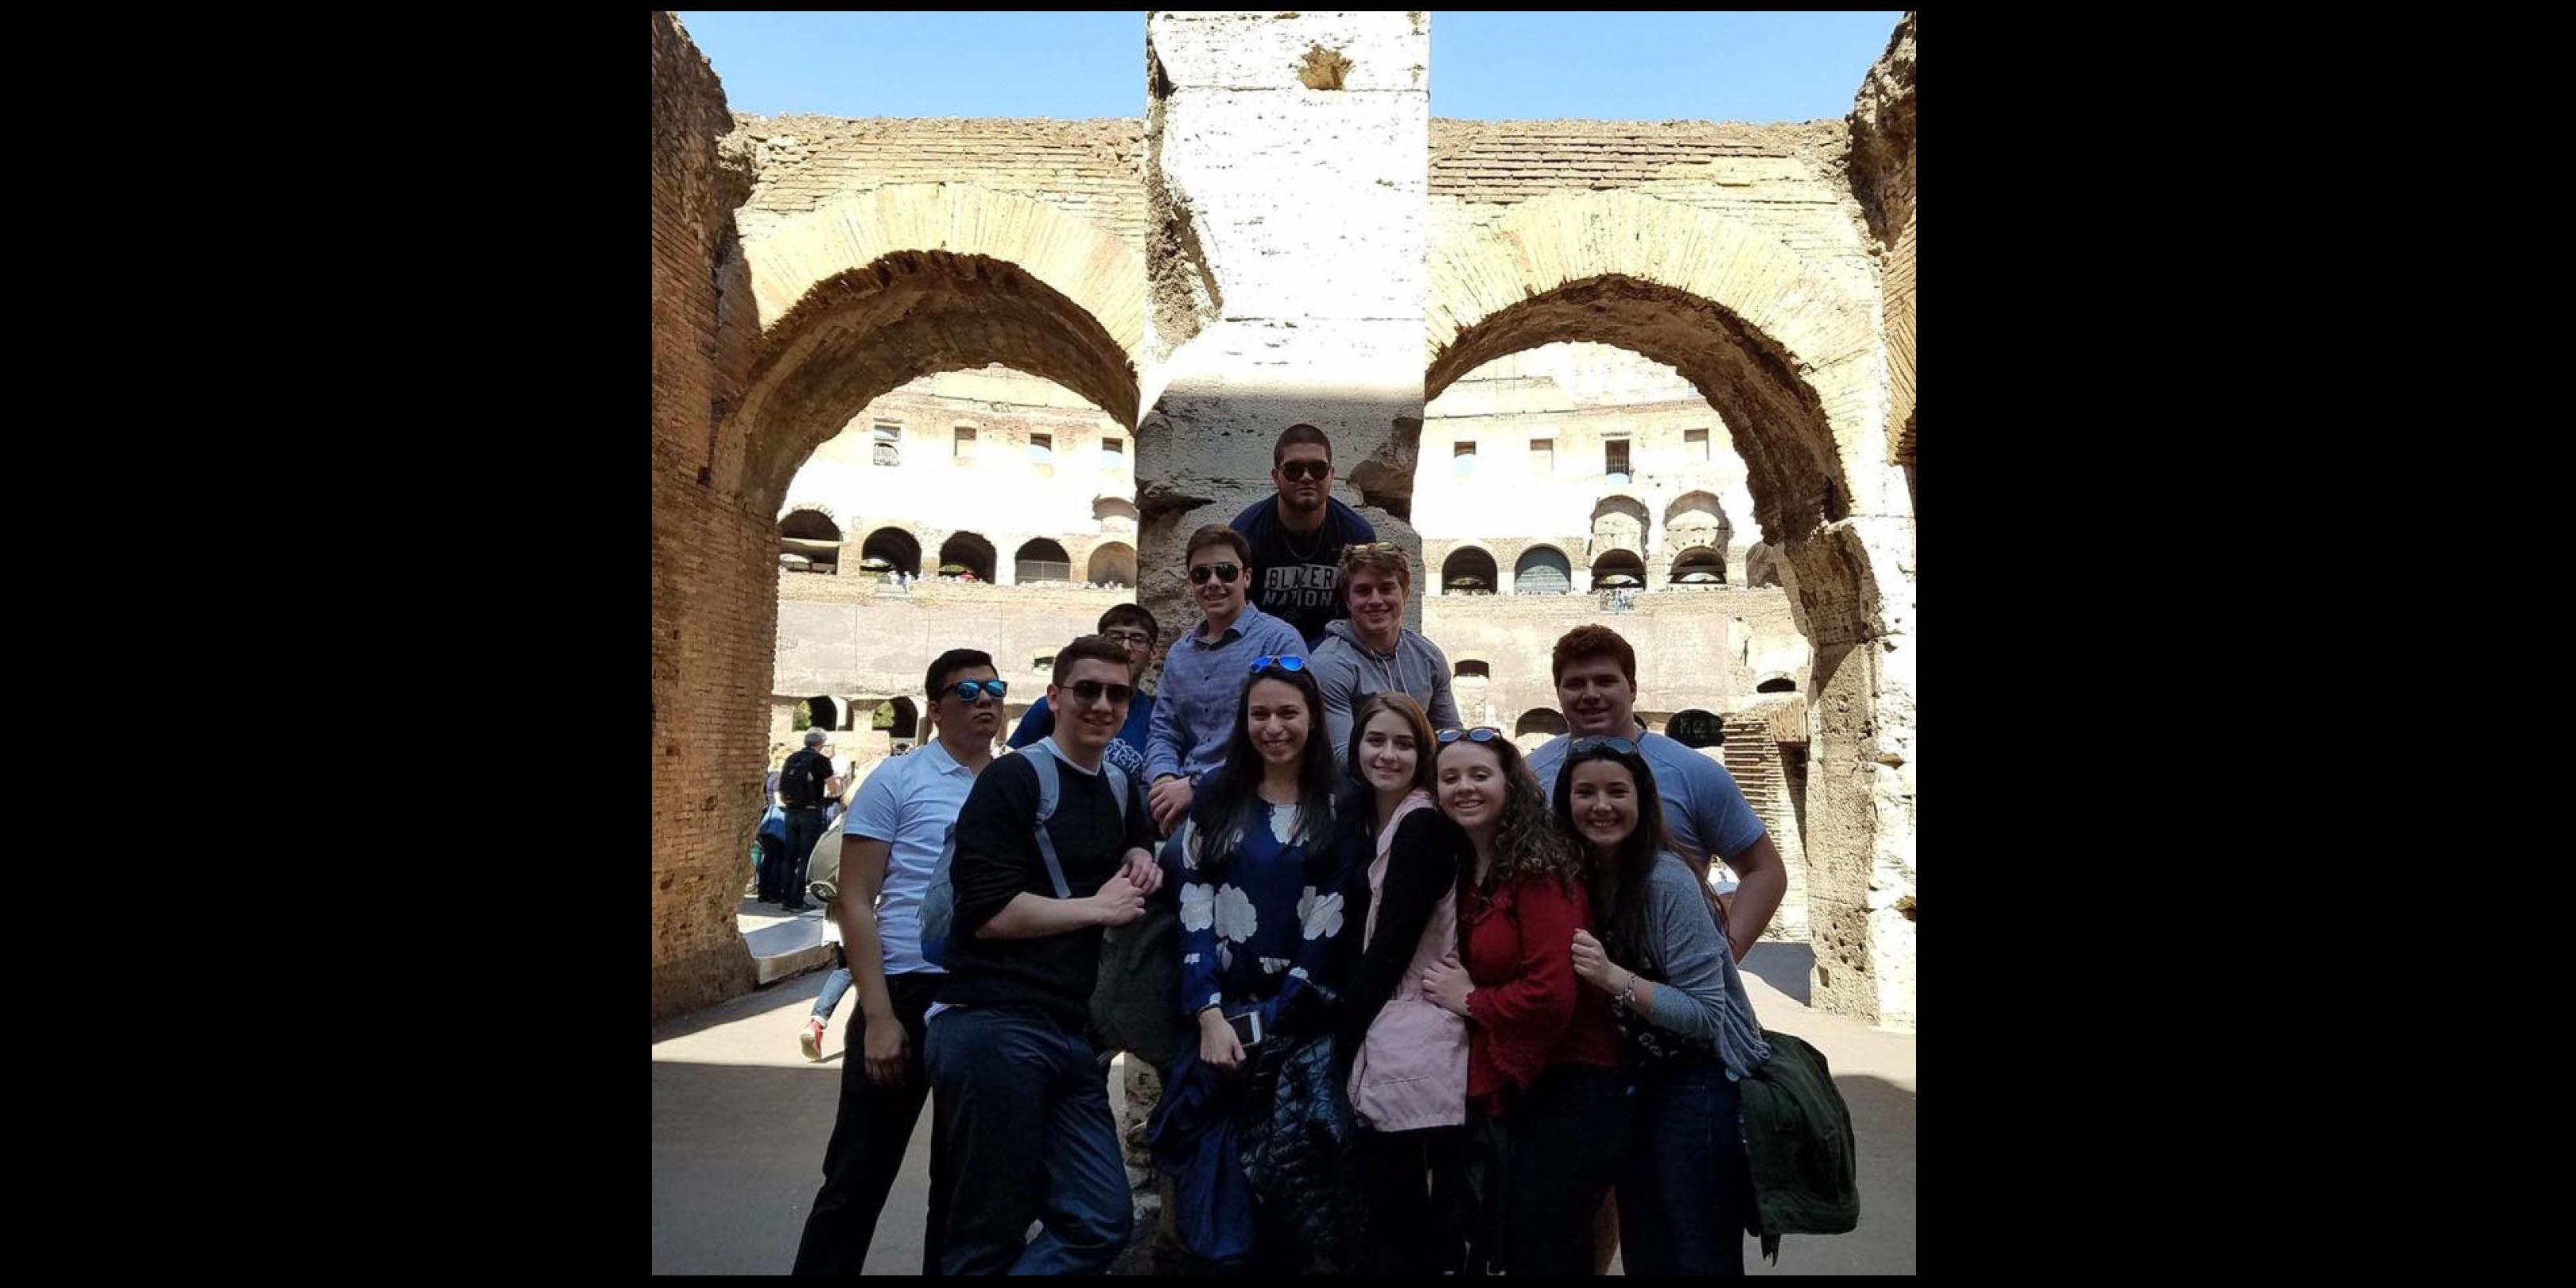 District 88 provides travel abroad experience for students: Expanding the classroom to Italy